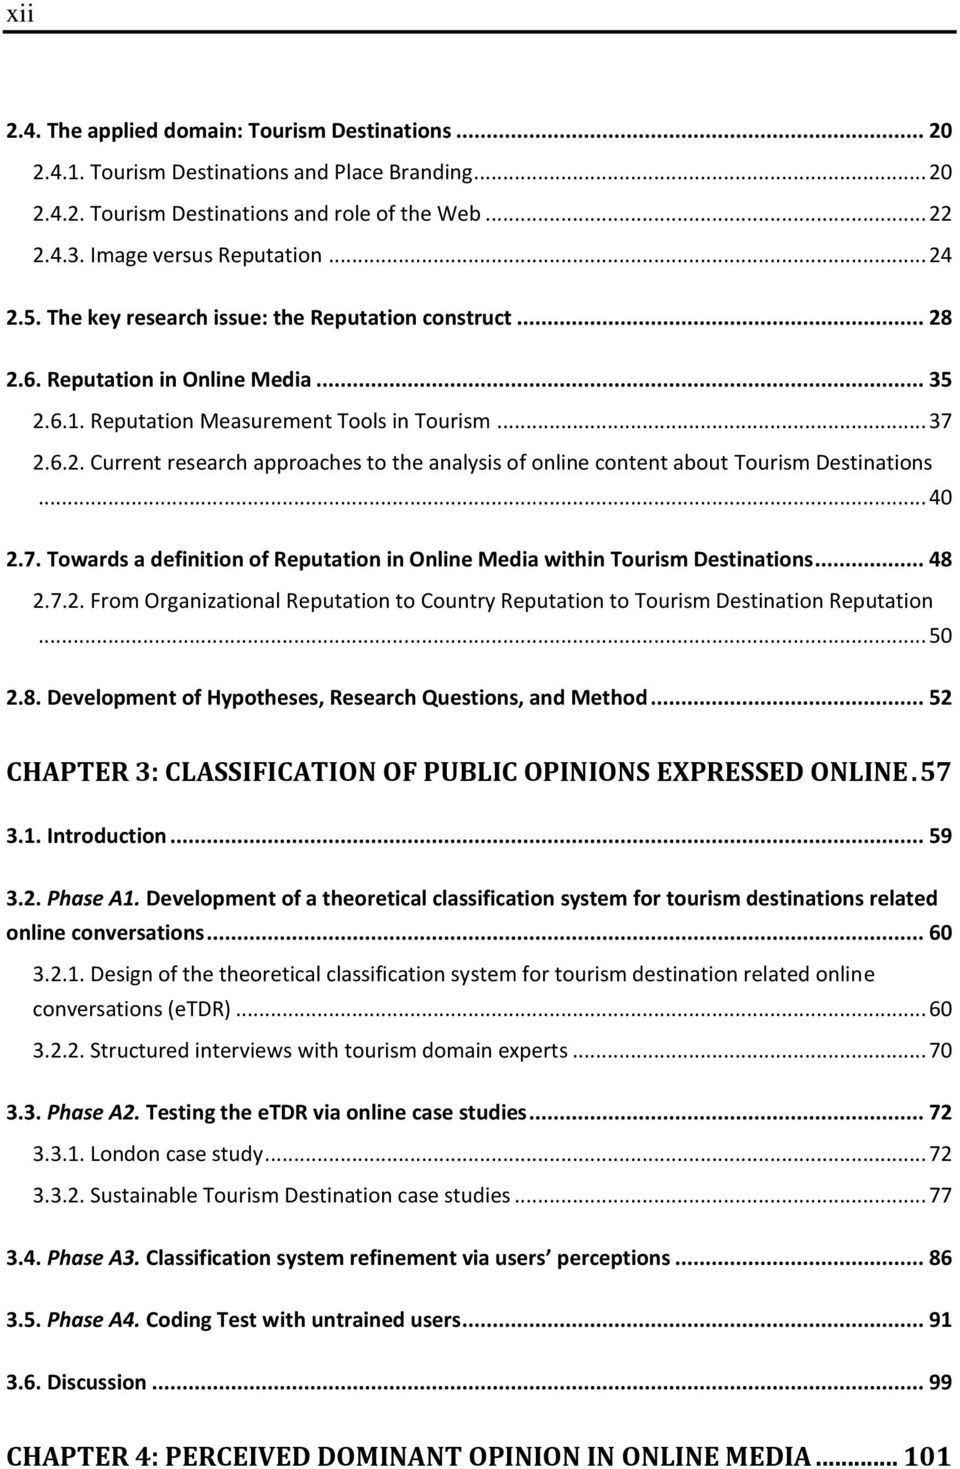 .. 40 2.7. Towards a definition of Reputation in Online Media within Tourism Destinations... 48 2.7.2. From Organizational Reputation to Country Reputation to Tourism Destination Reputation... 50 2.8. Development of Hypotheses, Research Questions, and Method.